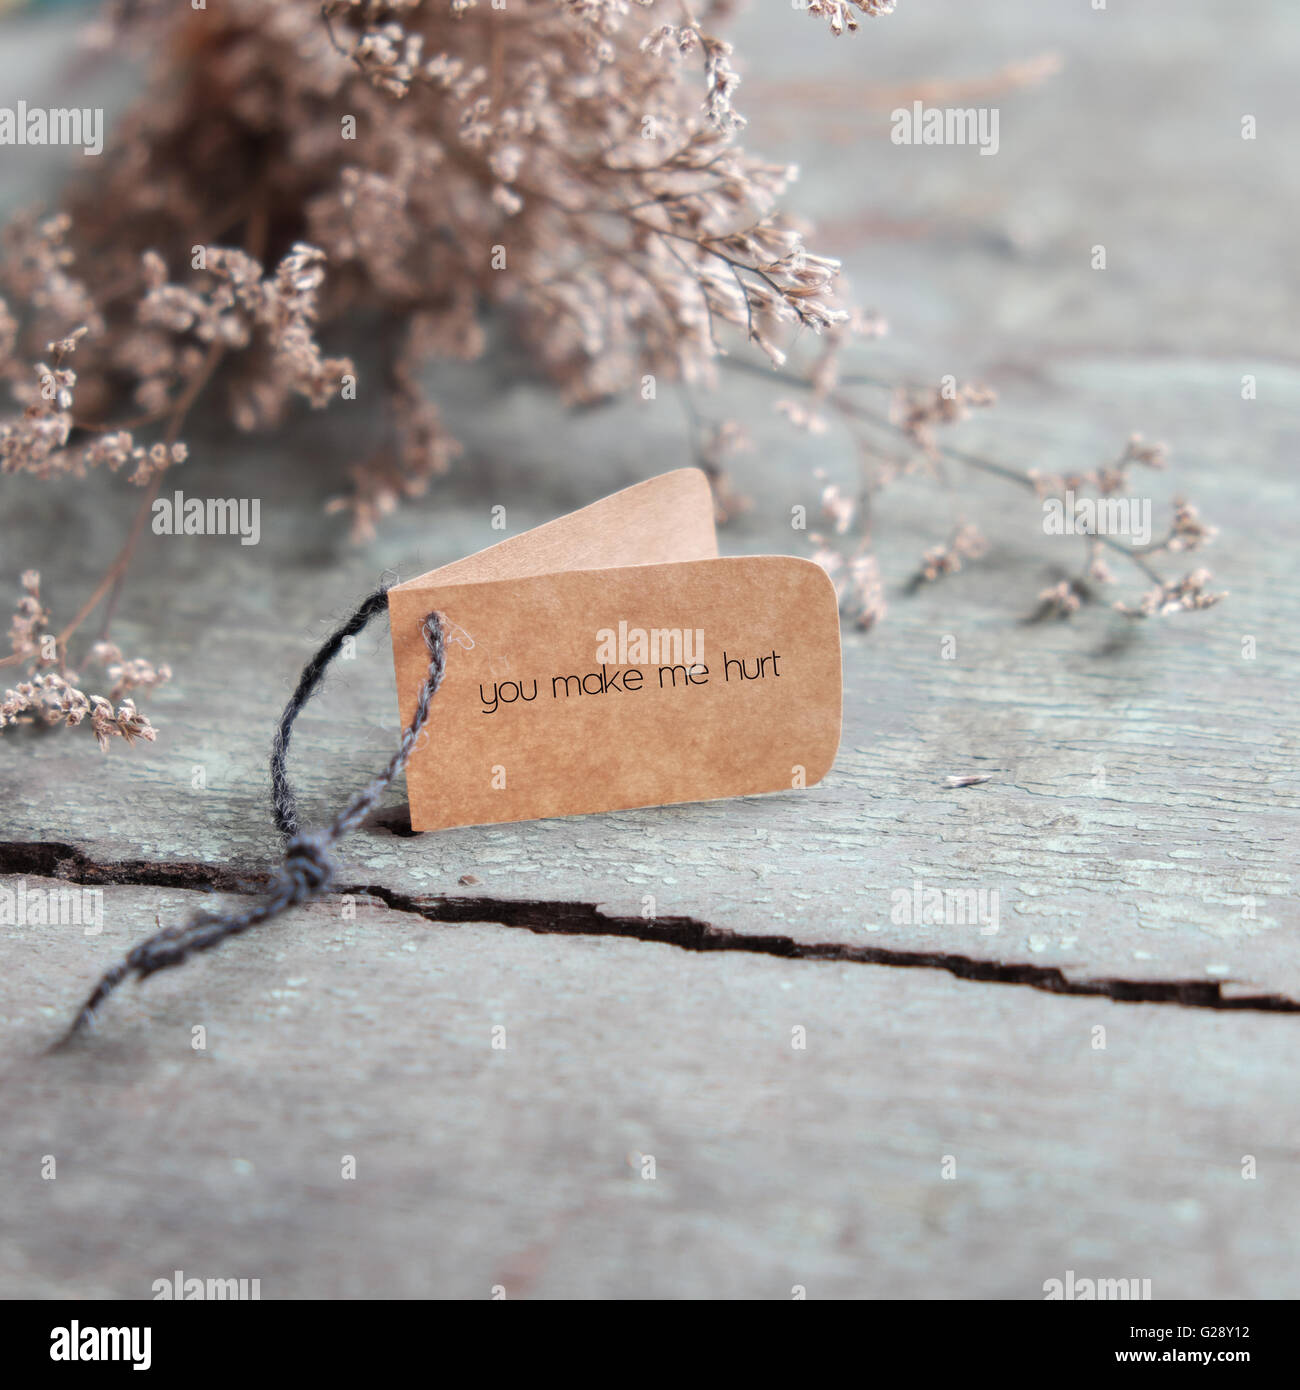 Sad Background In Love, With Message On Paper As: You Make Me Hurt, A  Lonesome And Despair Concept